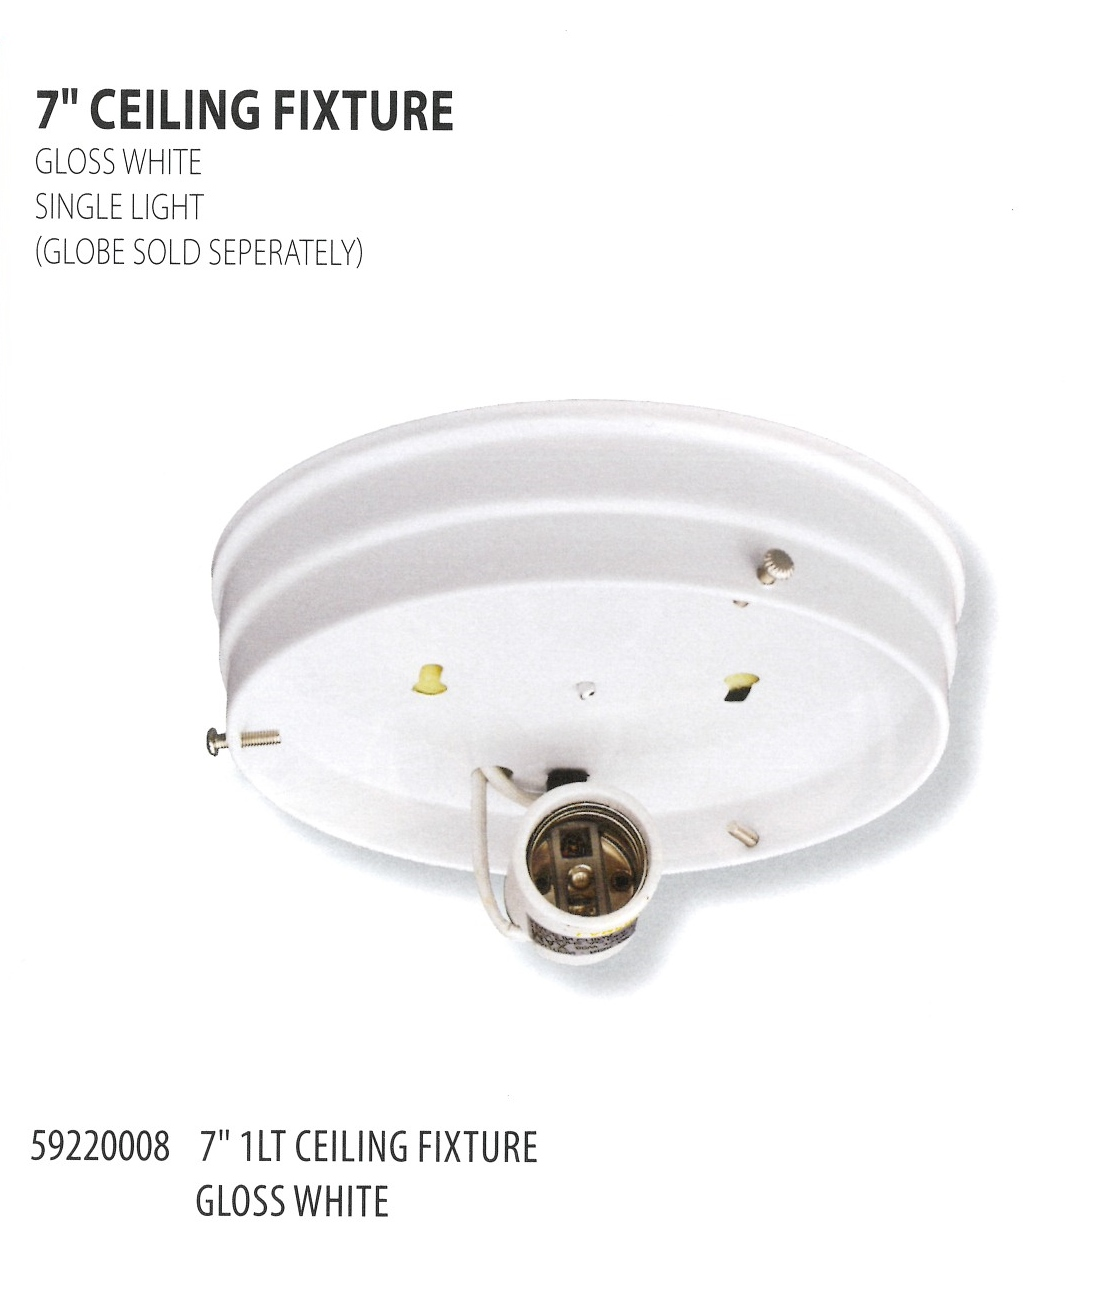 59220008 7 INCH CEILING FIXTURE